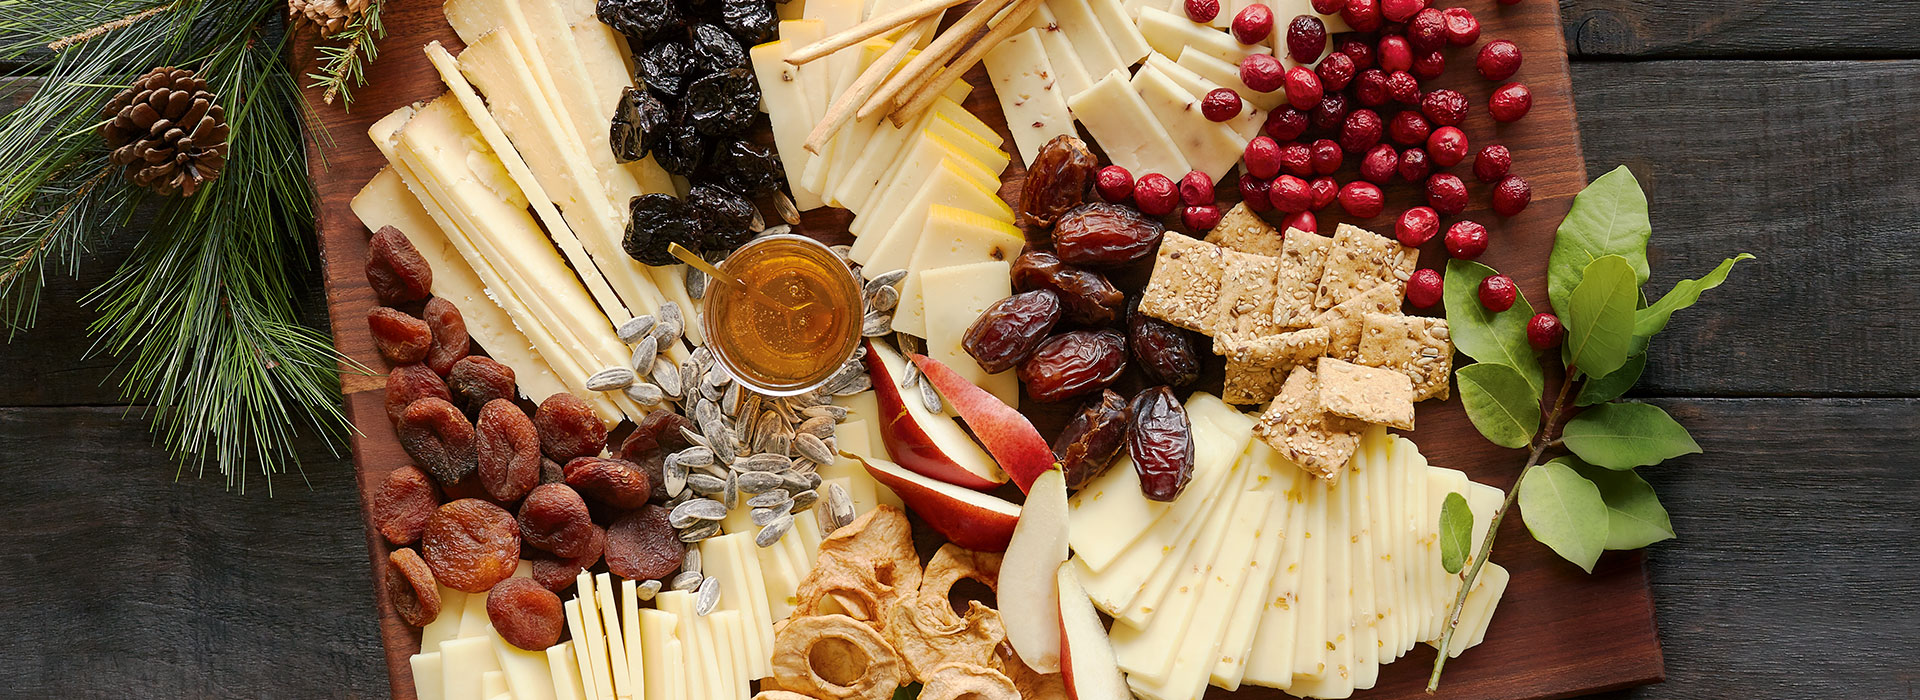 Holiday Flavor-Spiked Cheese Board